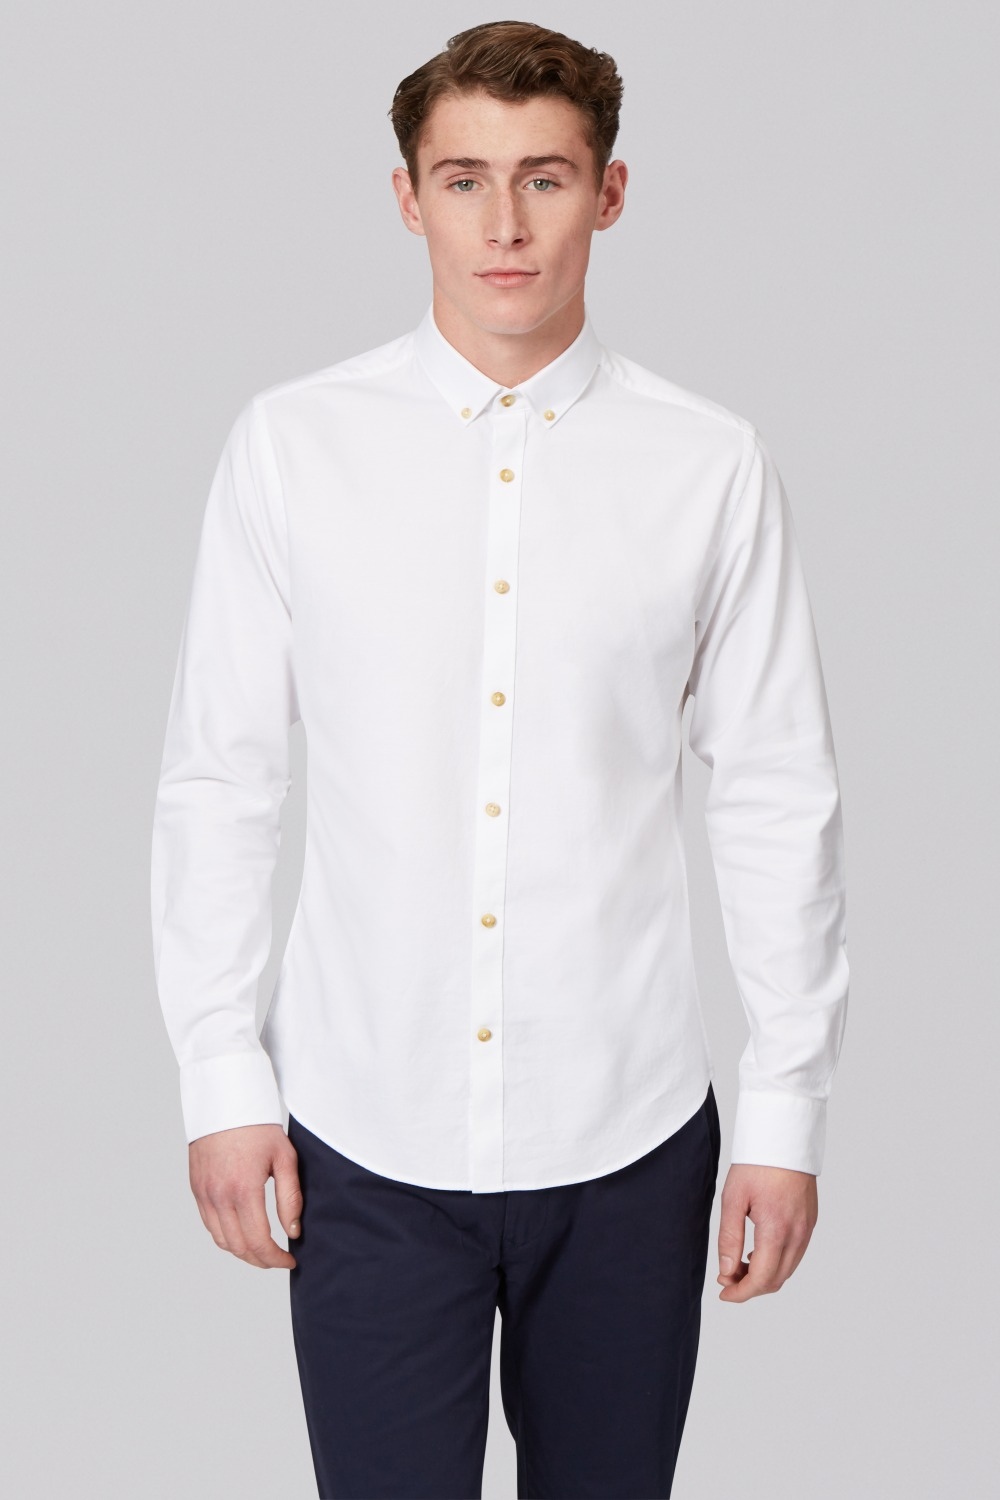 new arriving 100 cotton custom made white oxford button ForMens White Oxford Button Down Shirt